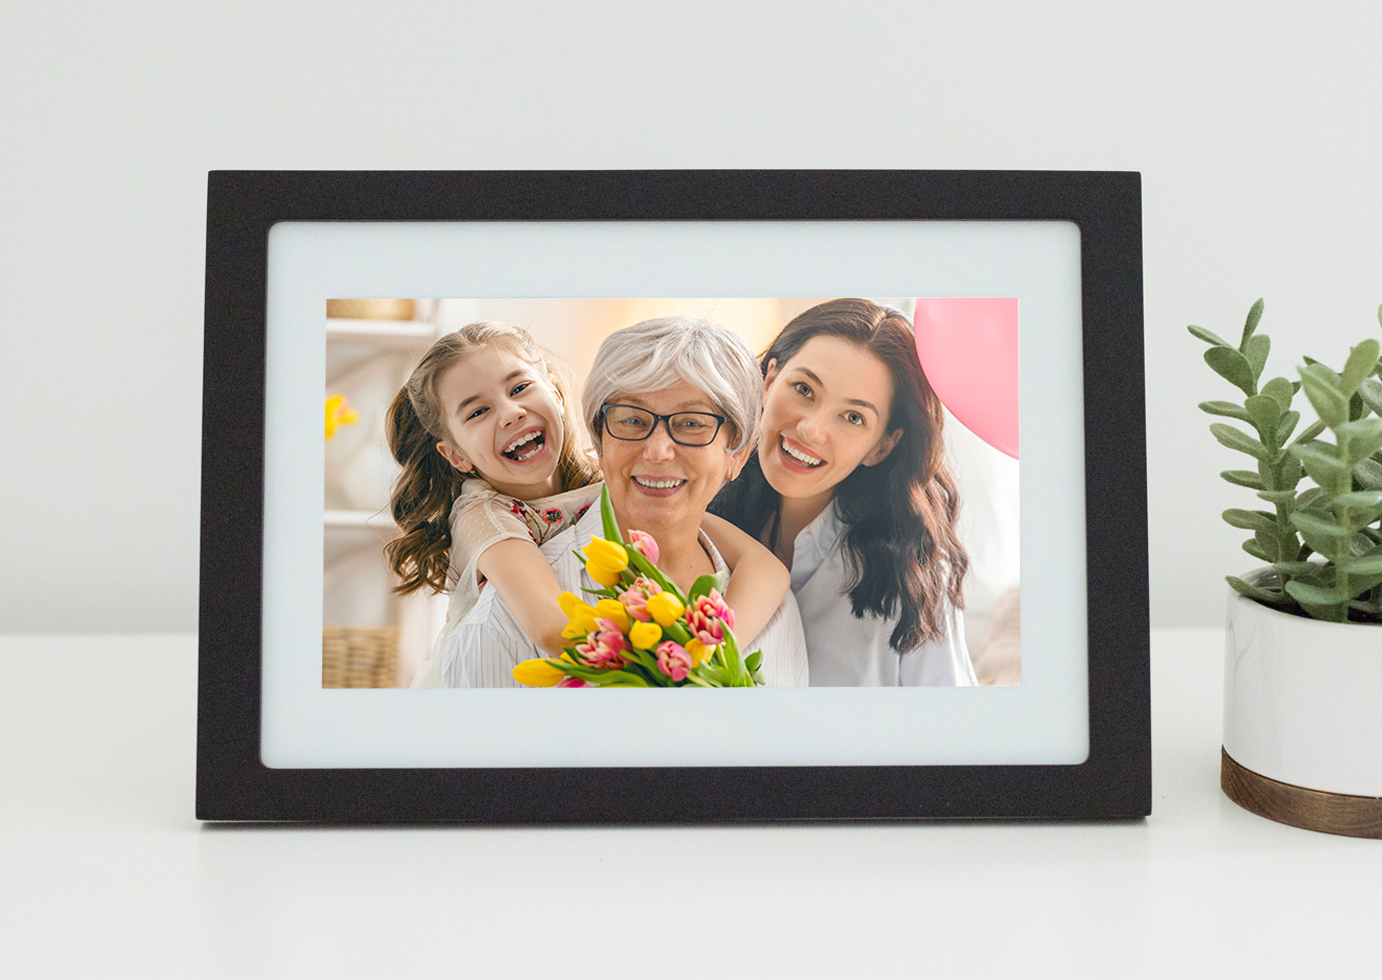 This Photo Frame Has A Killer Feature That Makes It The Perfect Mother's Day Gift